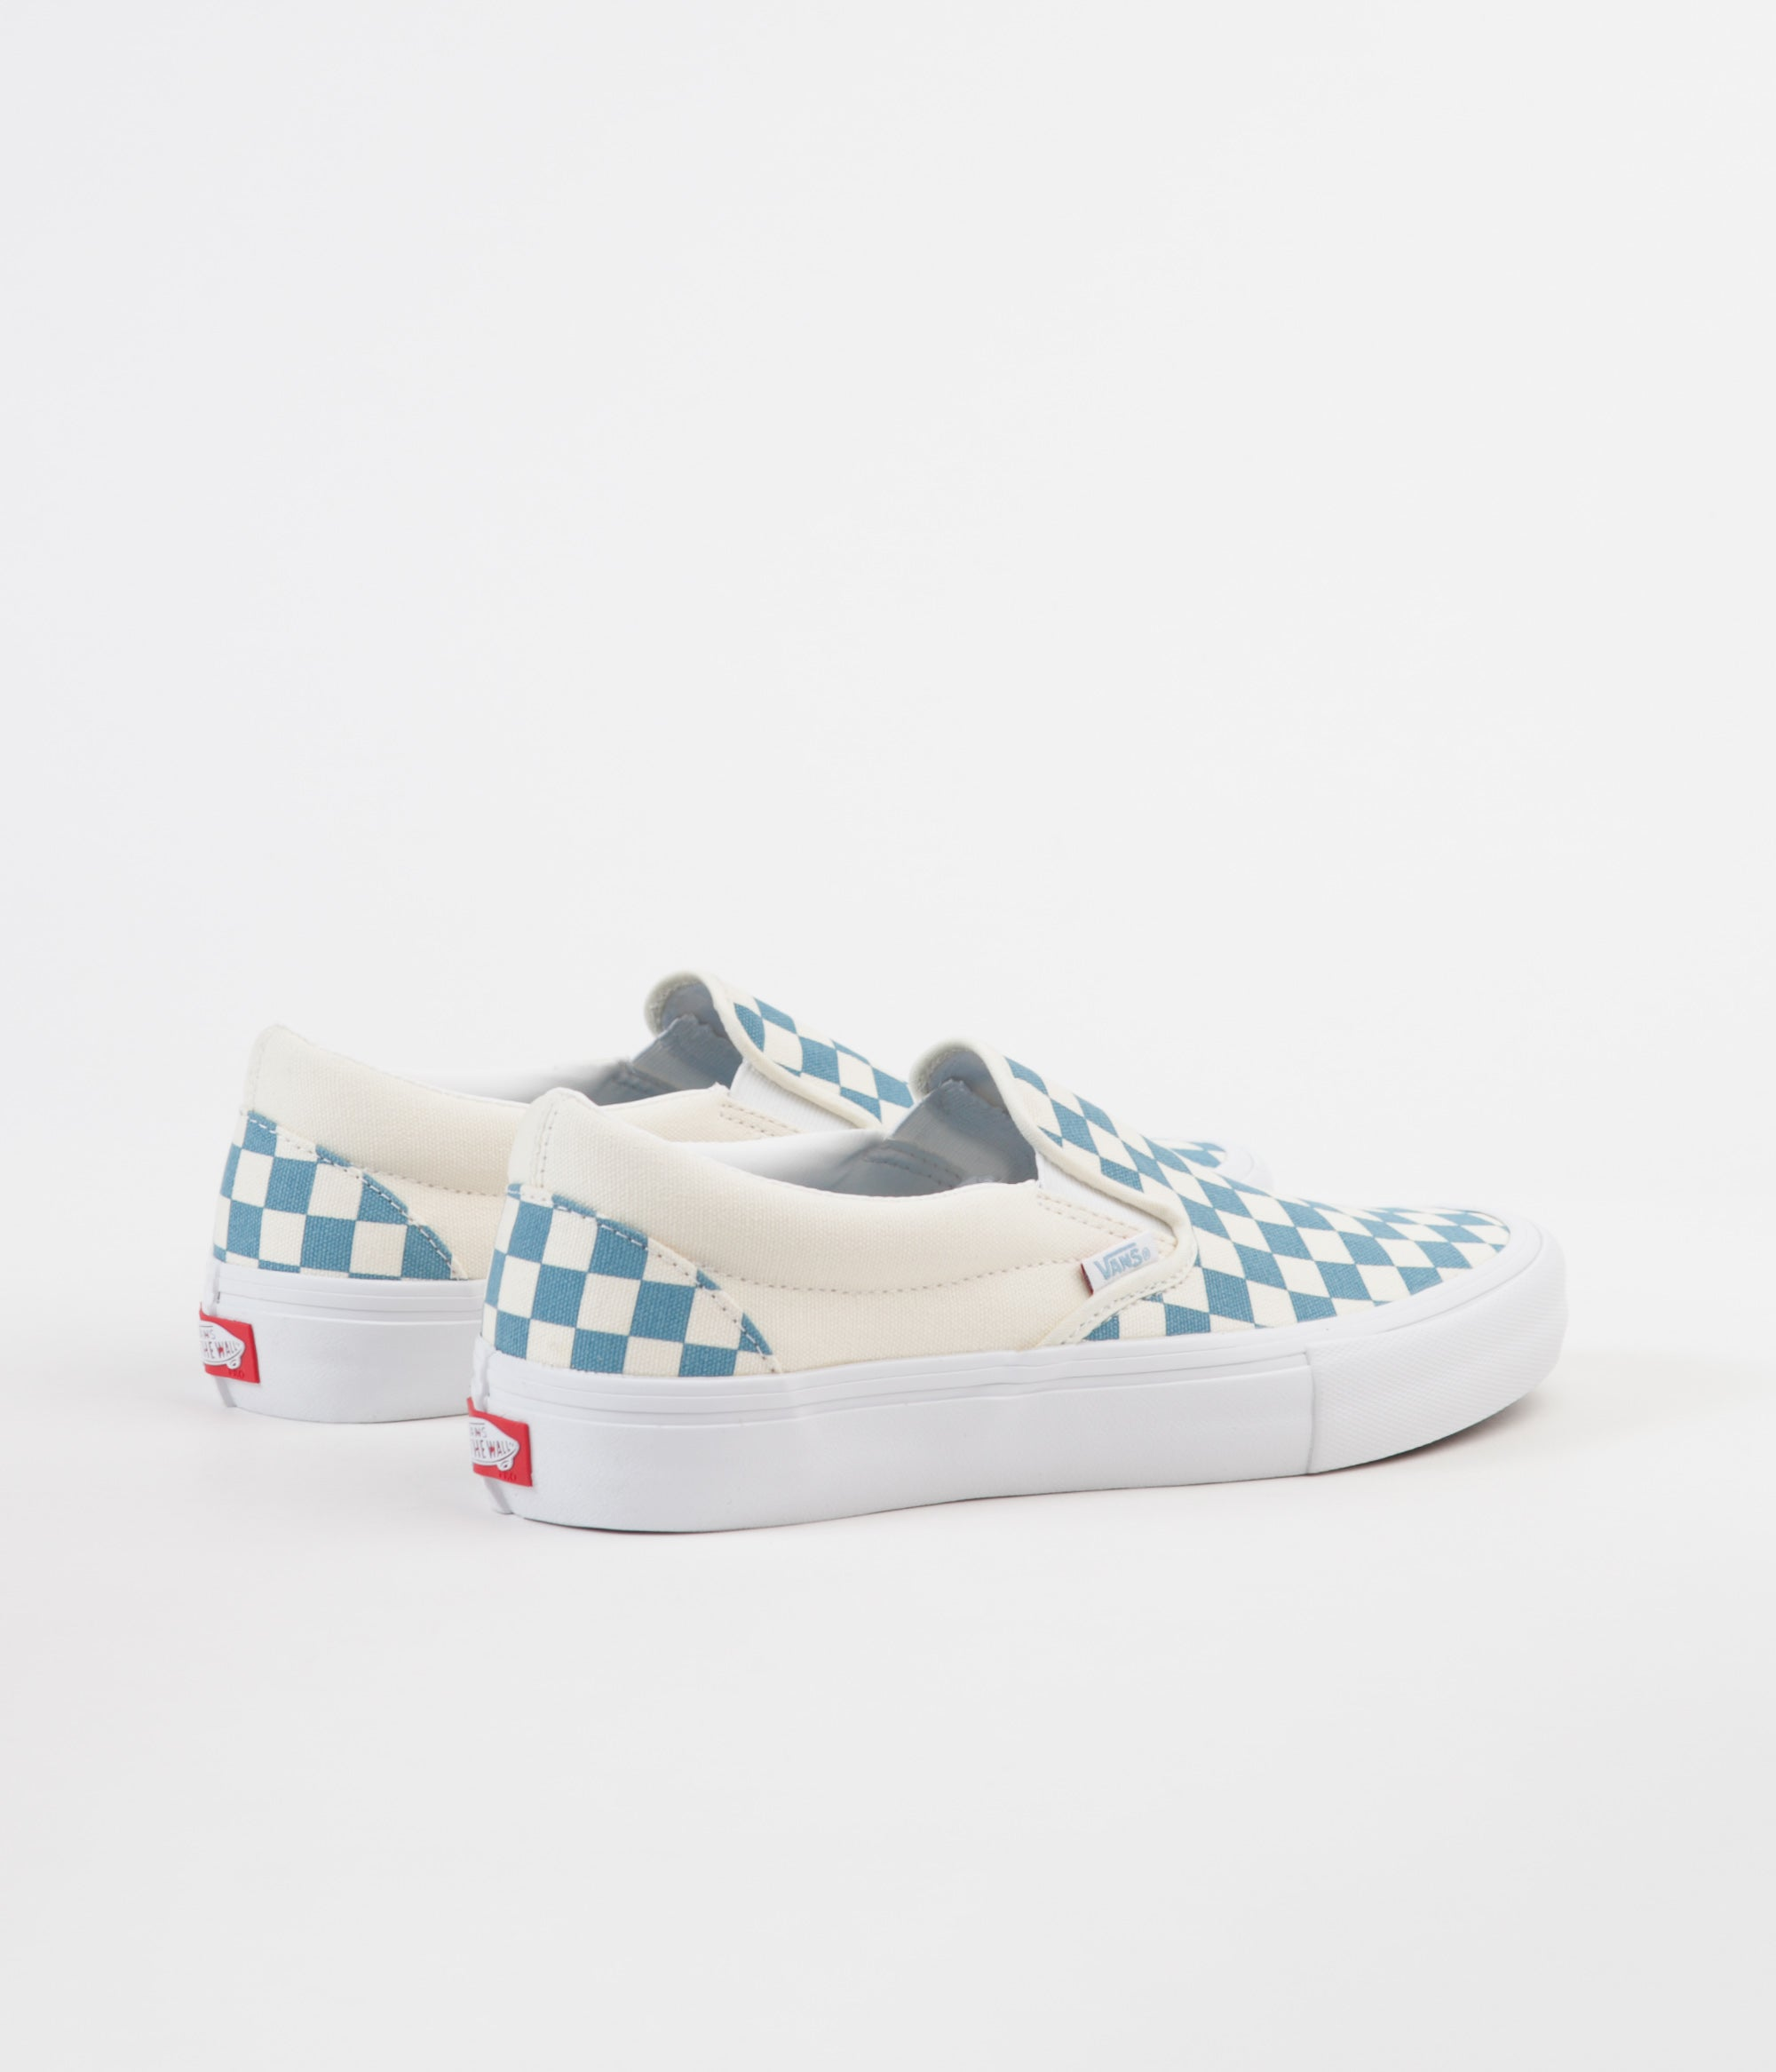 ... Vans Slip On Pro Checkerboard Shoes - Adriatic Blue   White ... f71a4556bfa8